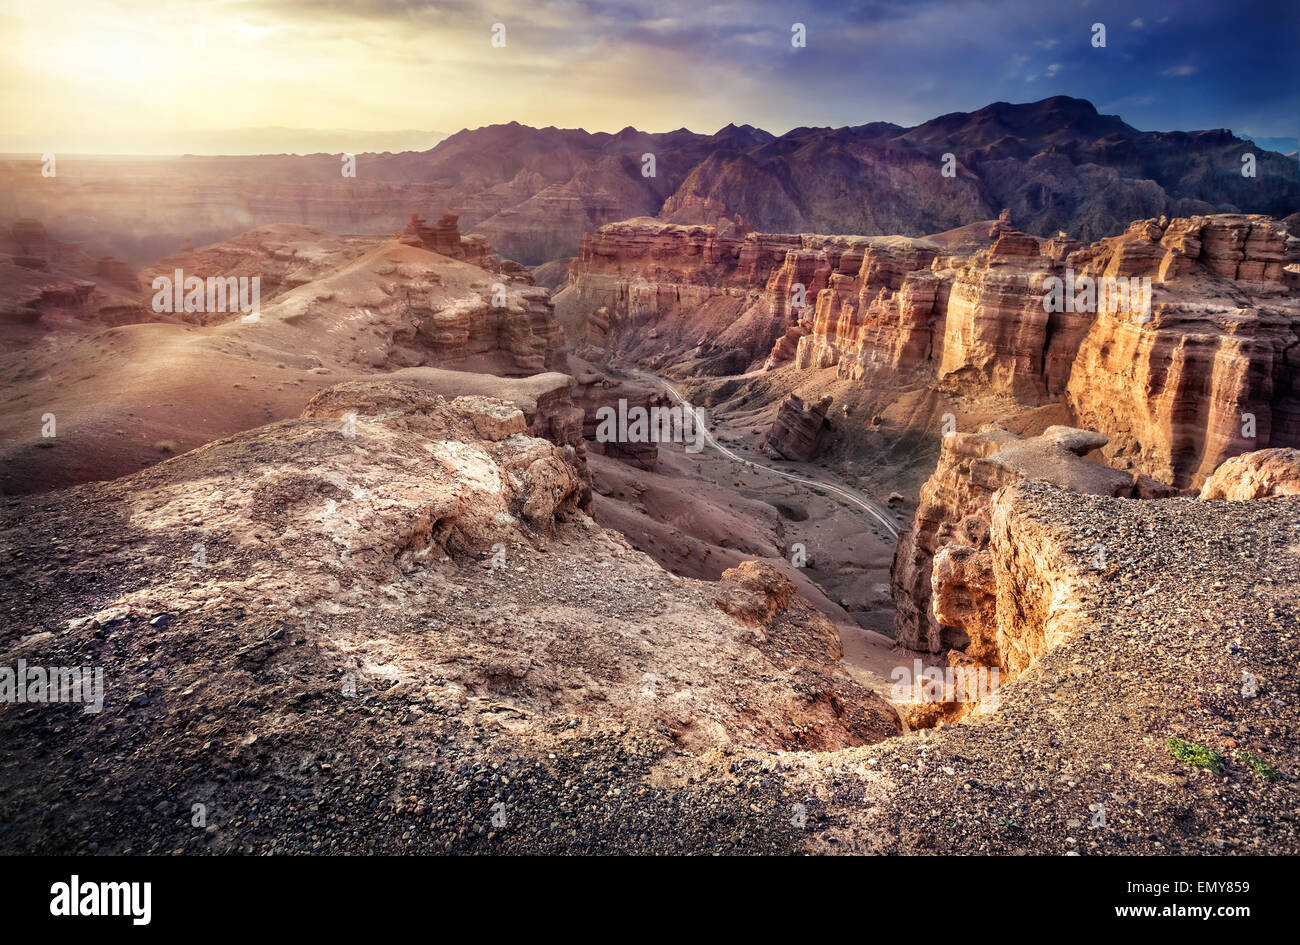 Charyn grand canyon at overcast sunset sky in Kazakhstan - Stock Image